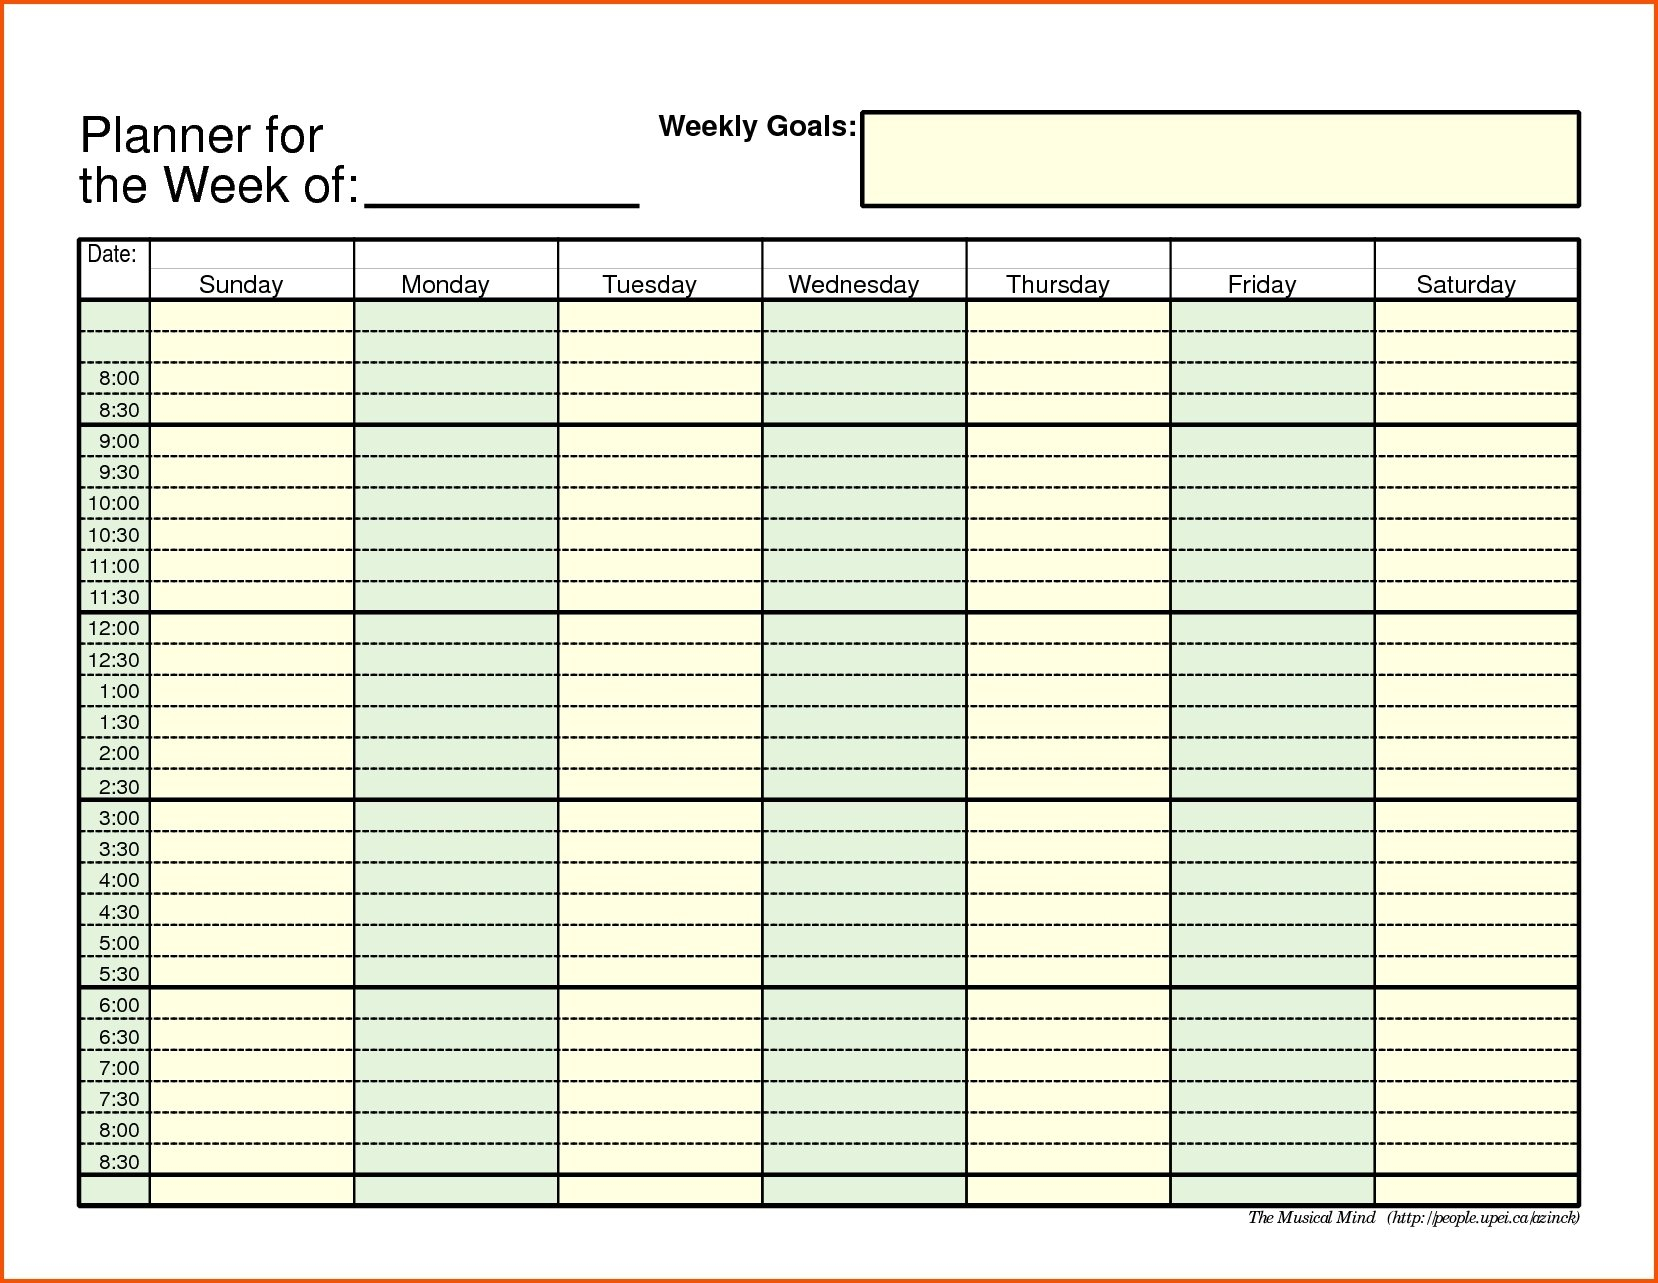 Weekly Schedule With Time Slots - Calendar Inspiration Design Free Printable Weekly School Schedule With Time Slots